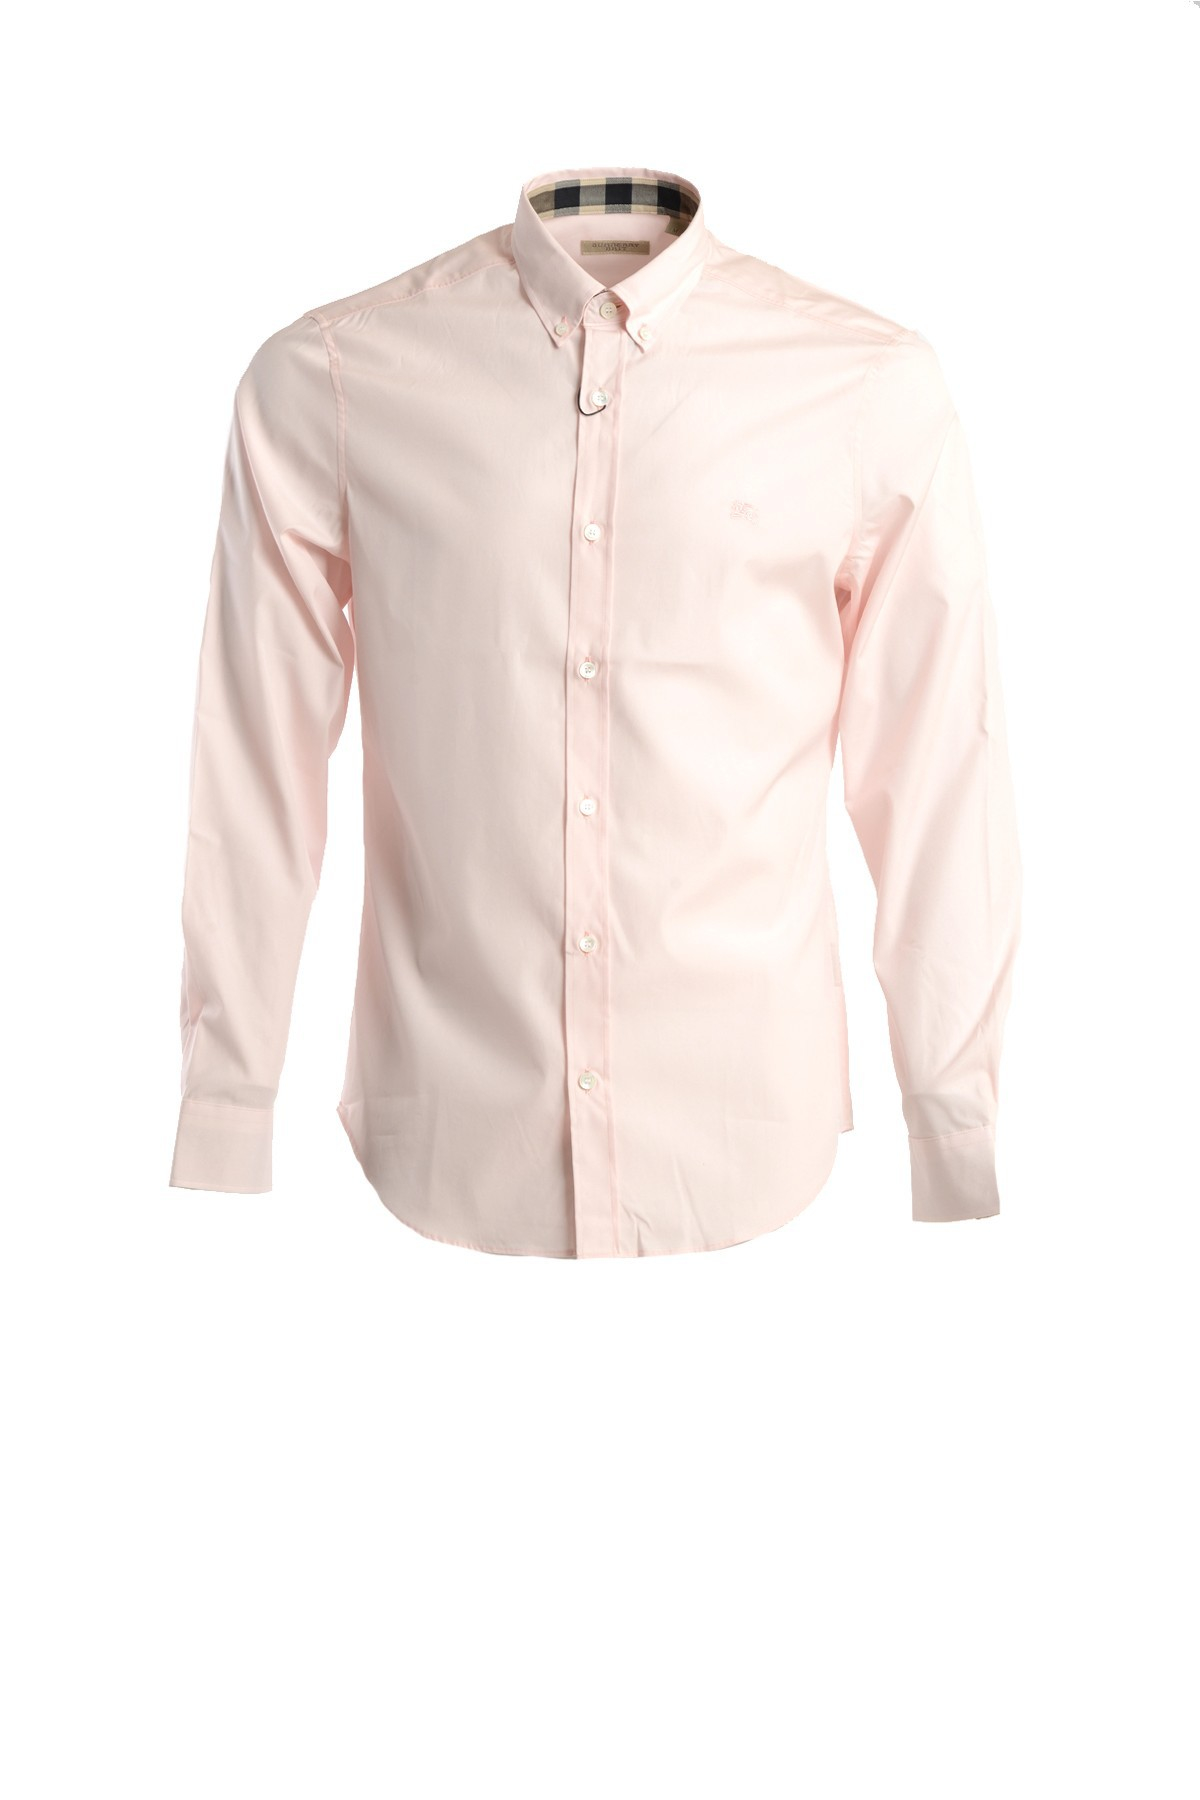 Burberry stretch cotton button down shirt in pink for men for Cotton button down shirts men